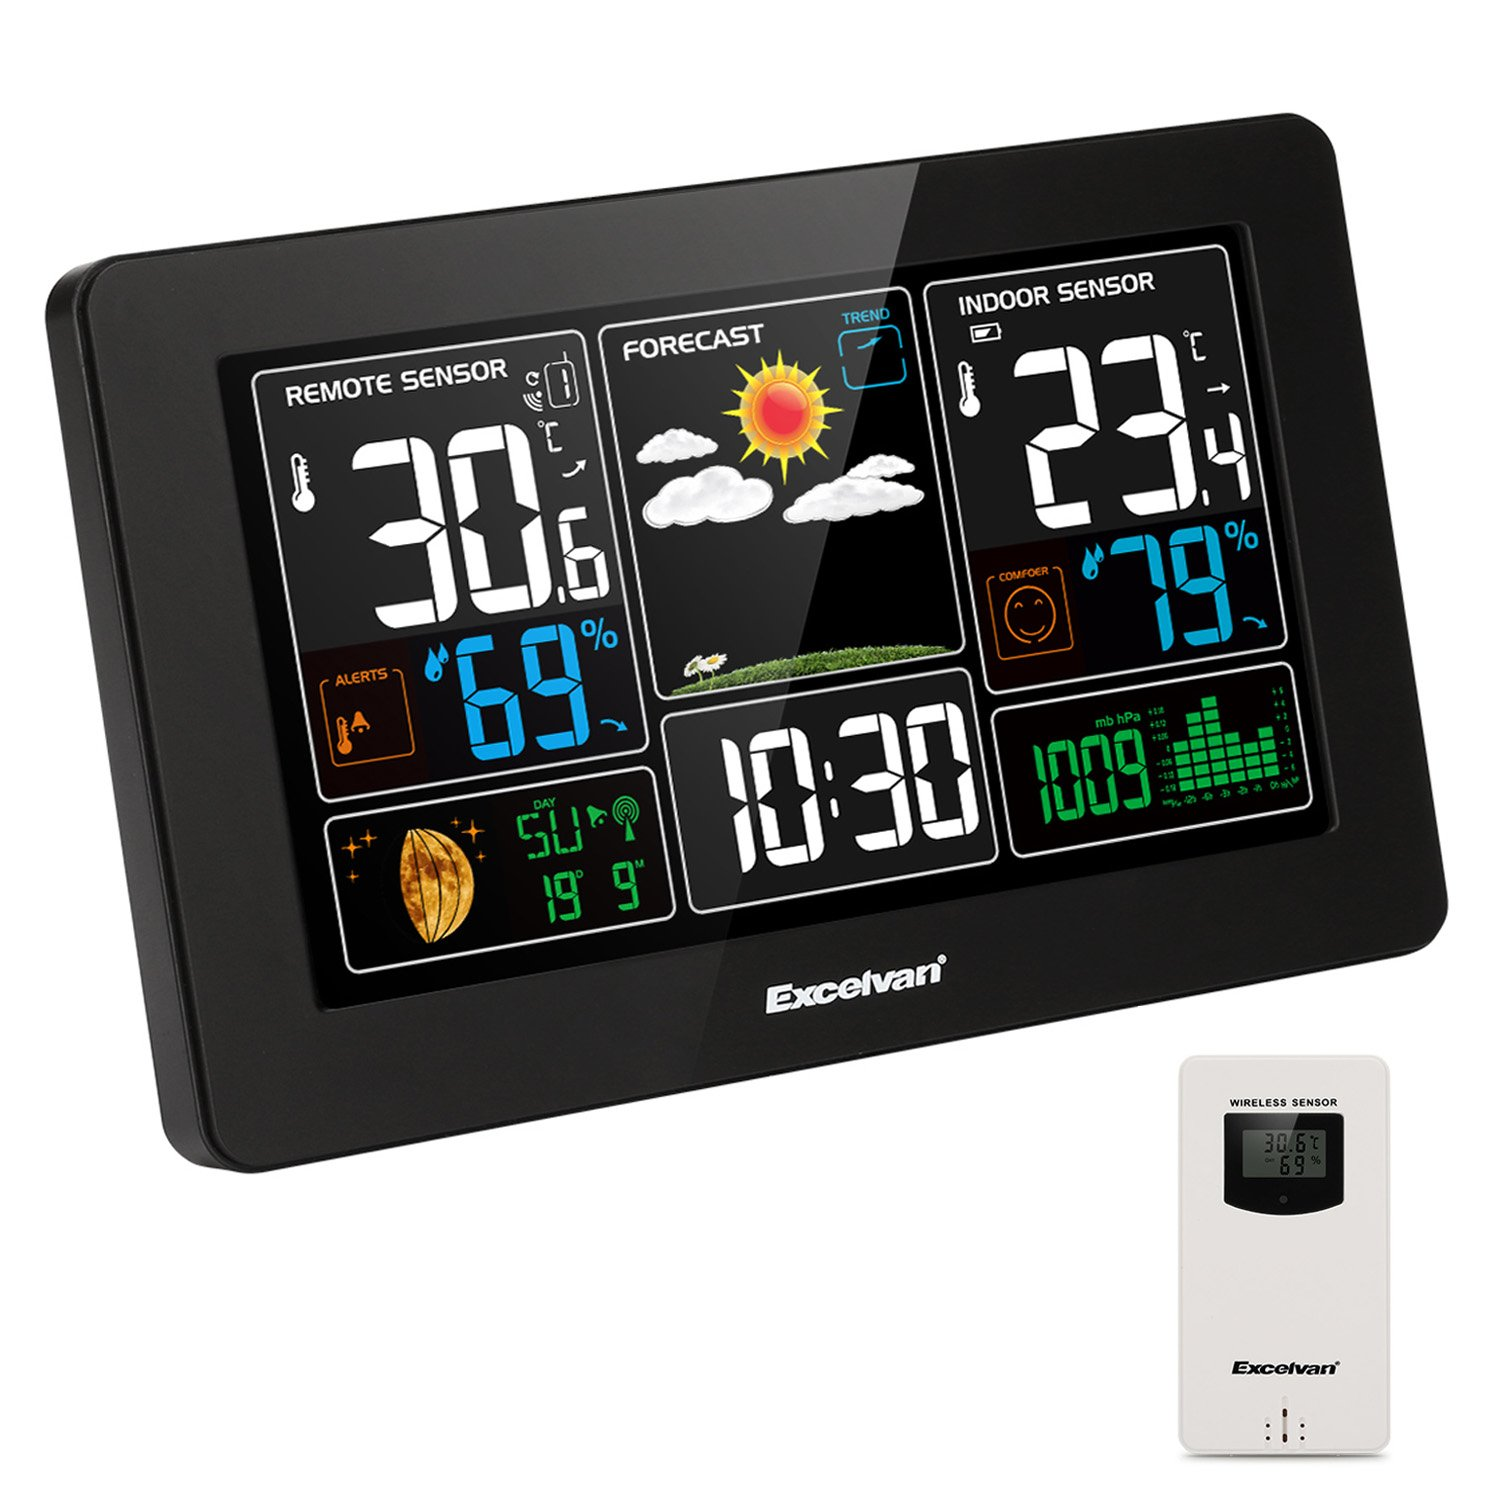 Excelvan Digital Wireless Weather Station with Large LCD Color Display, Barometer for Weather Forecast with Indoor and Outdoor Sensor, Temperature Humidity Monitor, Alarm Clock, Black